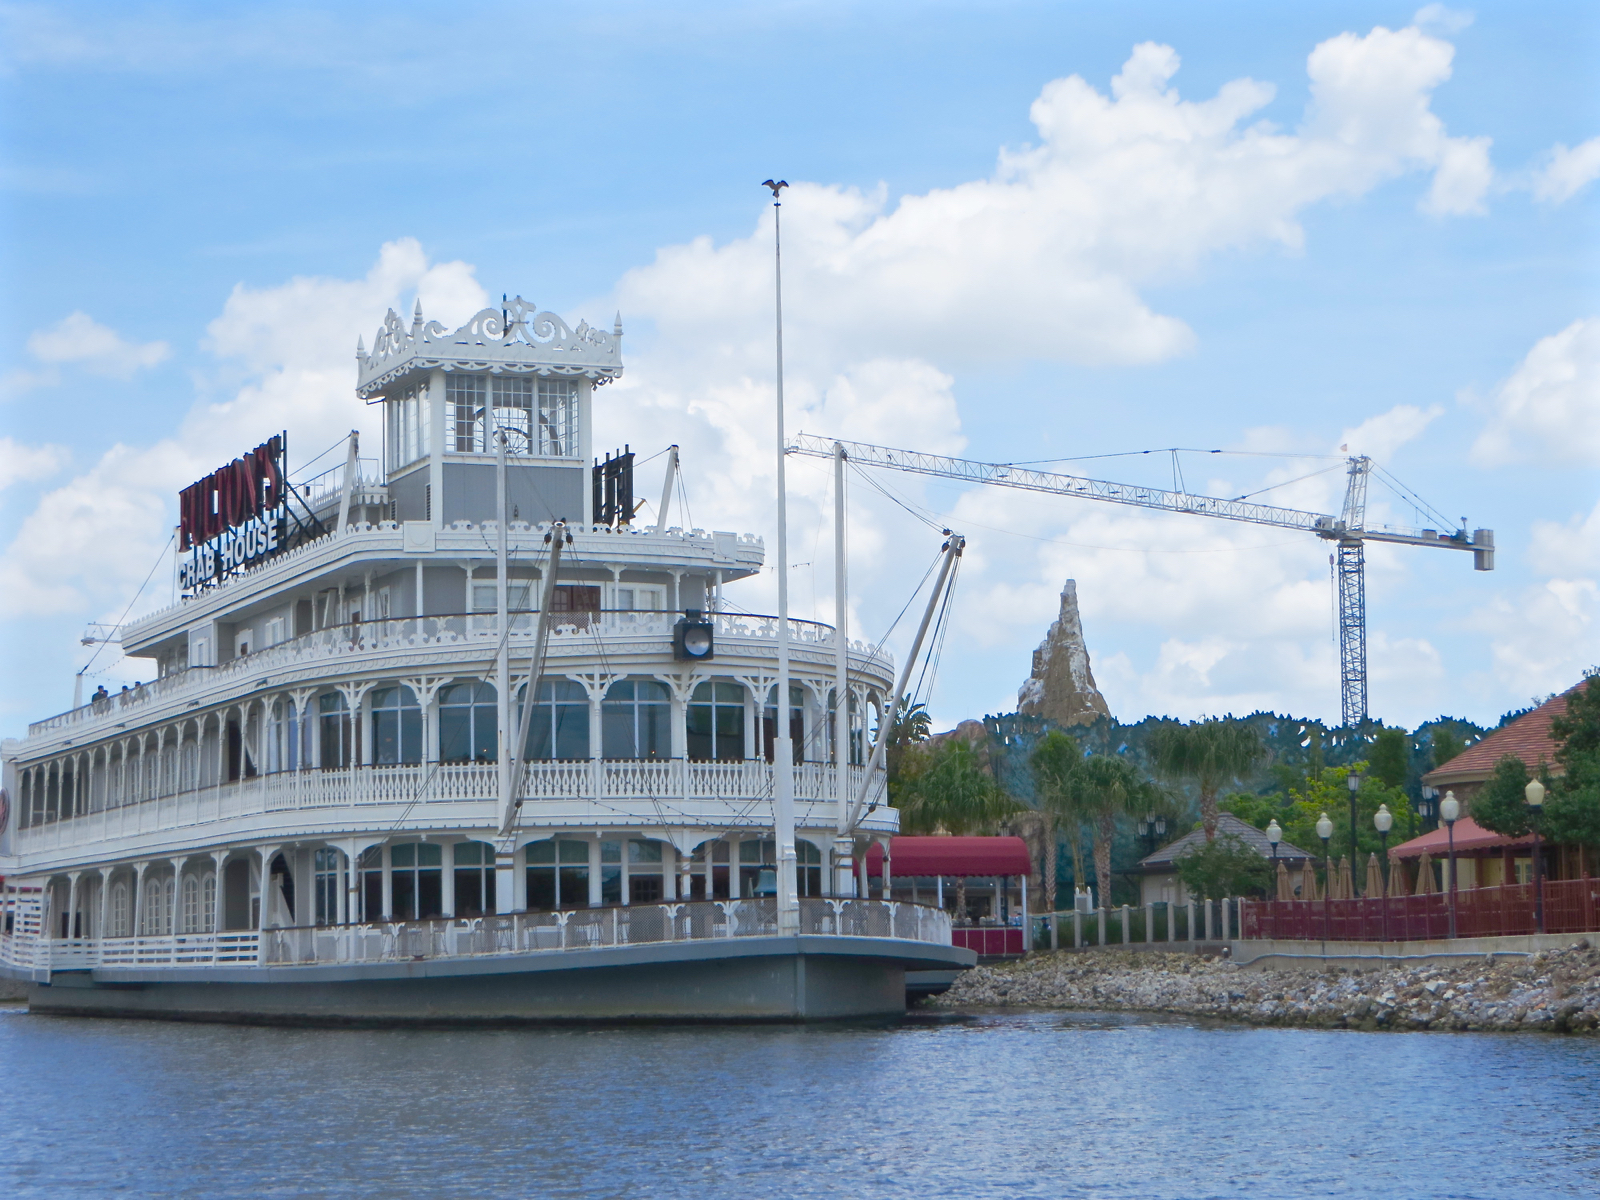 Walt Disney World Resort Update for July 28 - August 3, 2015